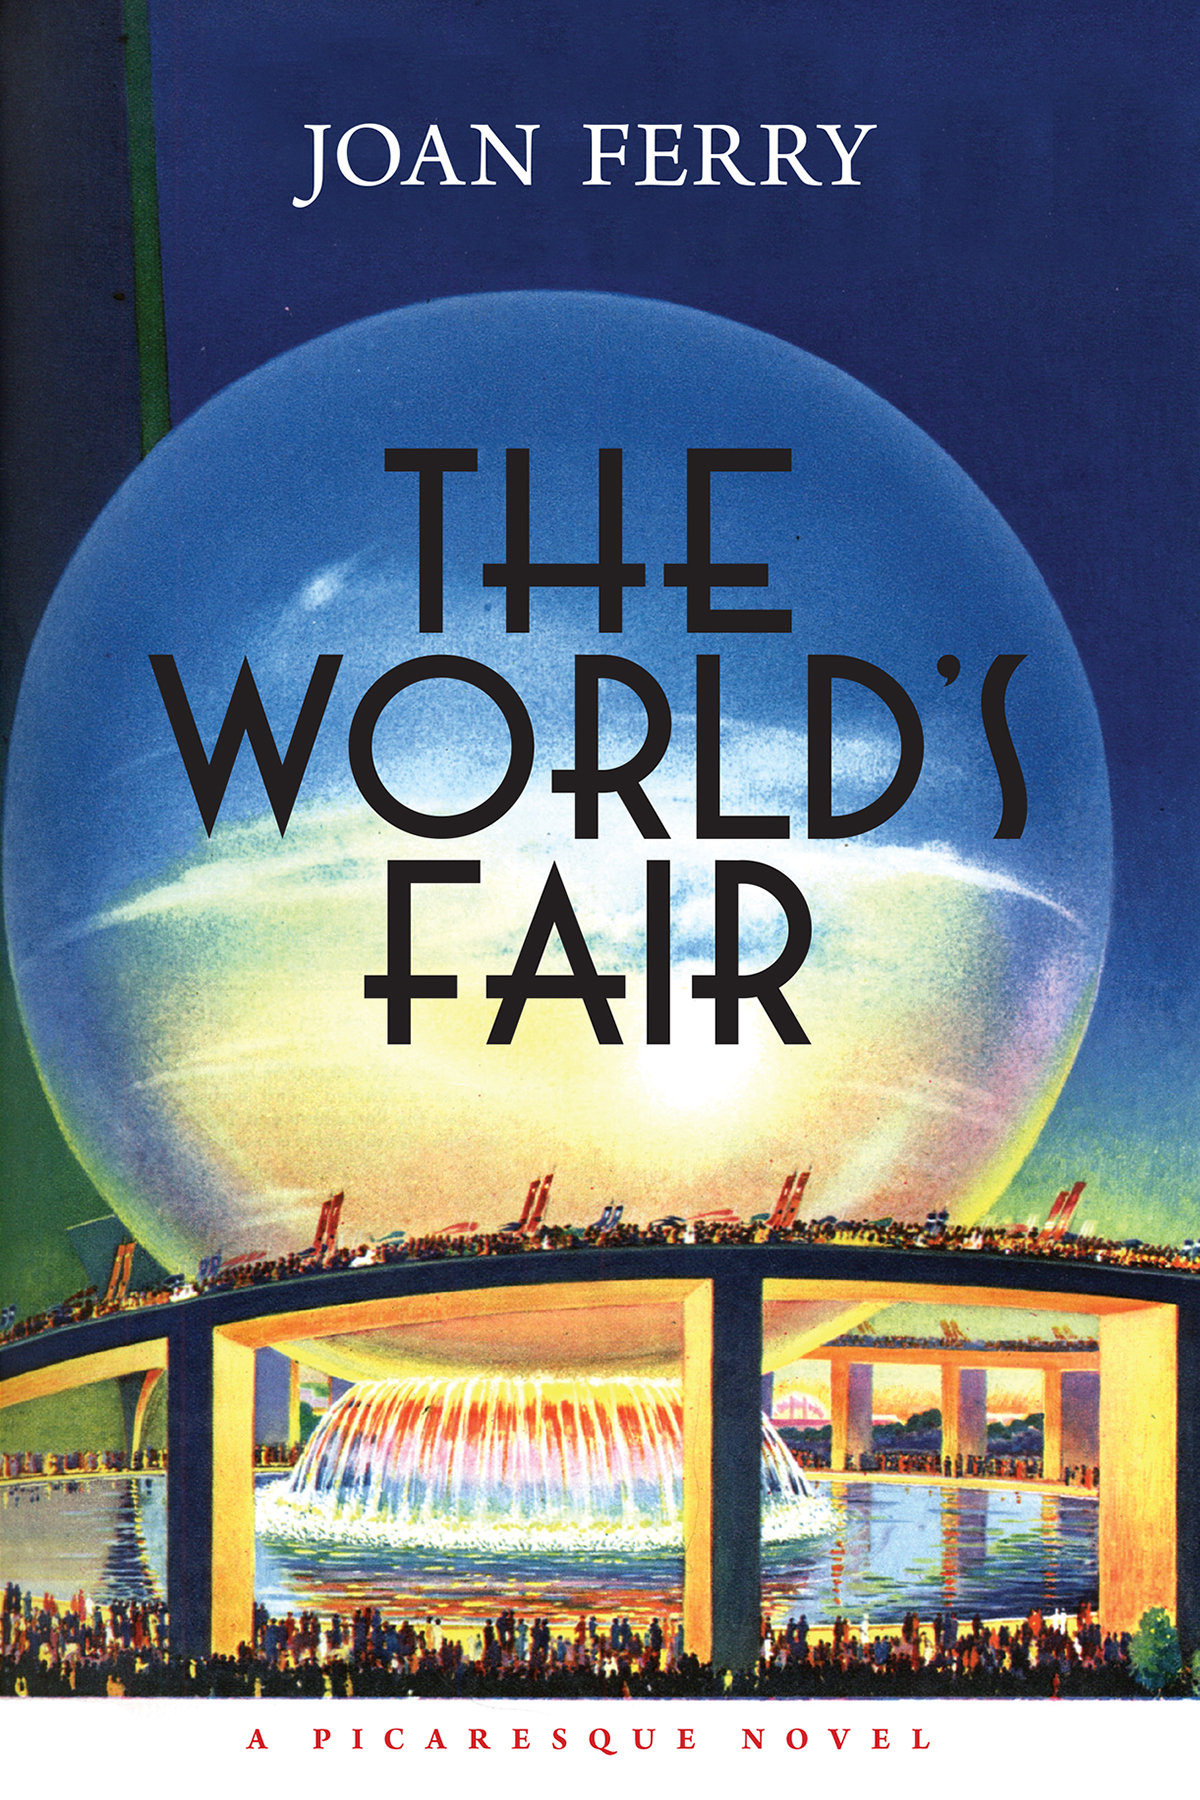 """The World's Fair. A Picaresque Novel"" by Joan Ferry"